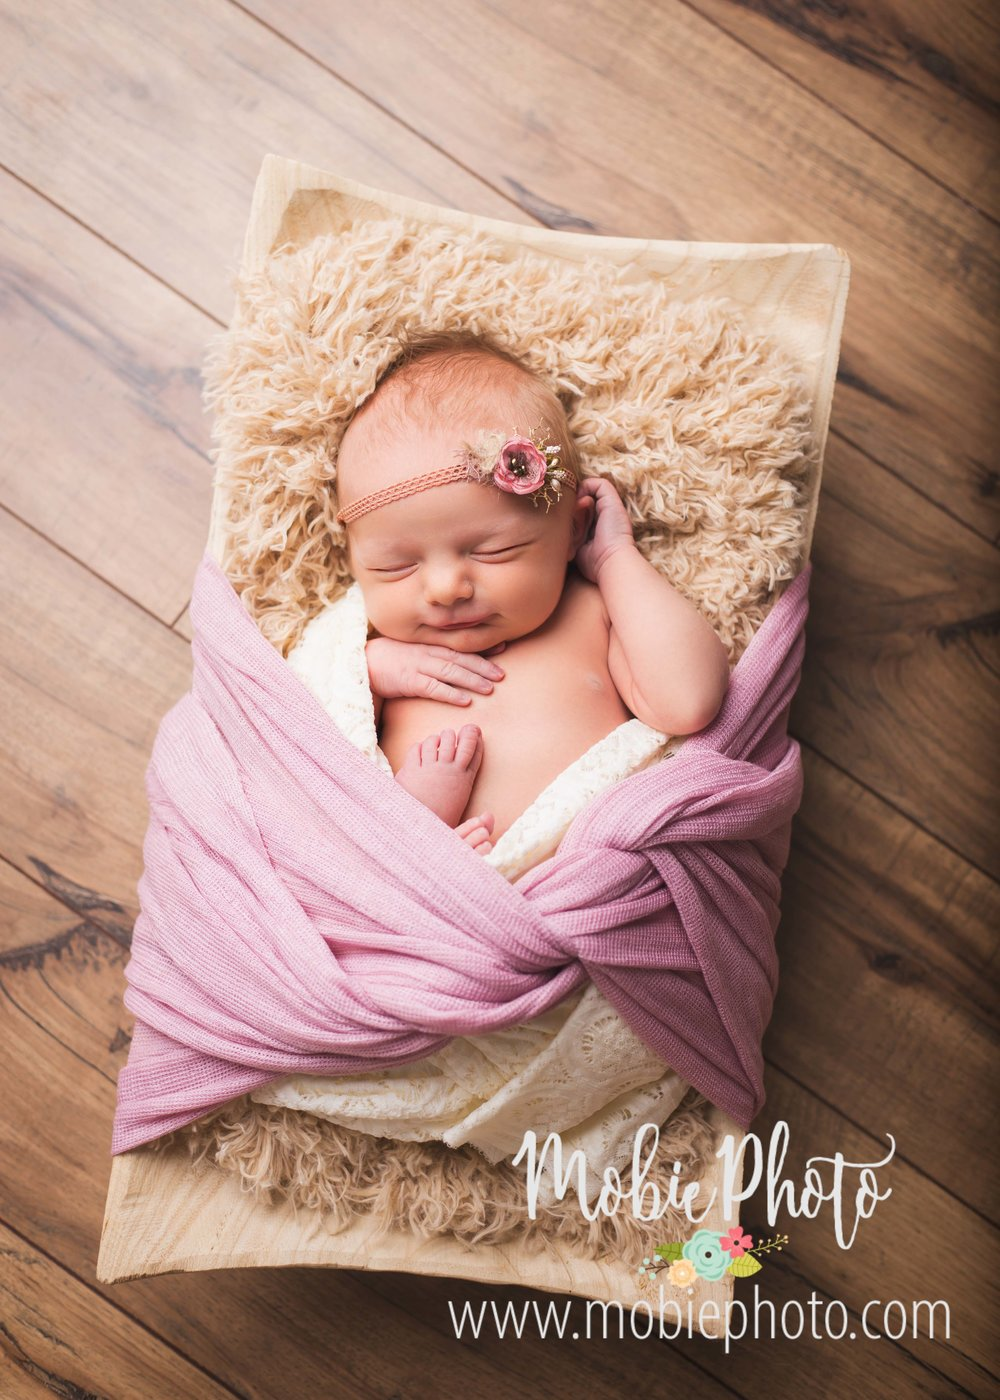 Utah Studio Newborn Photography - Mobie Photo www.mobiephoto.com